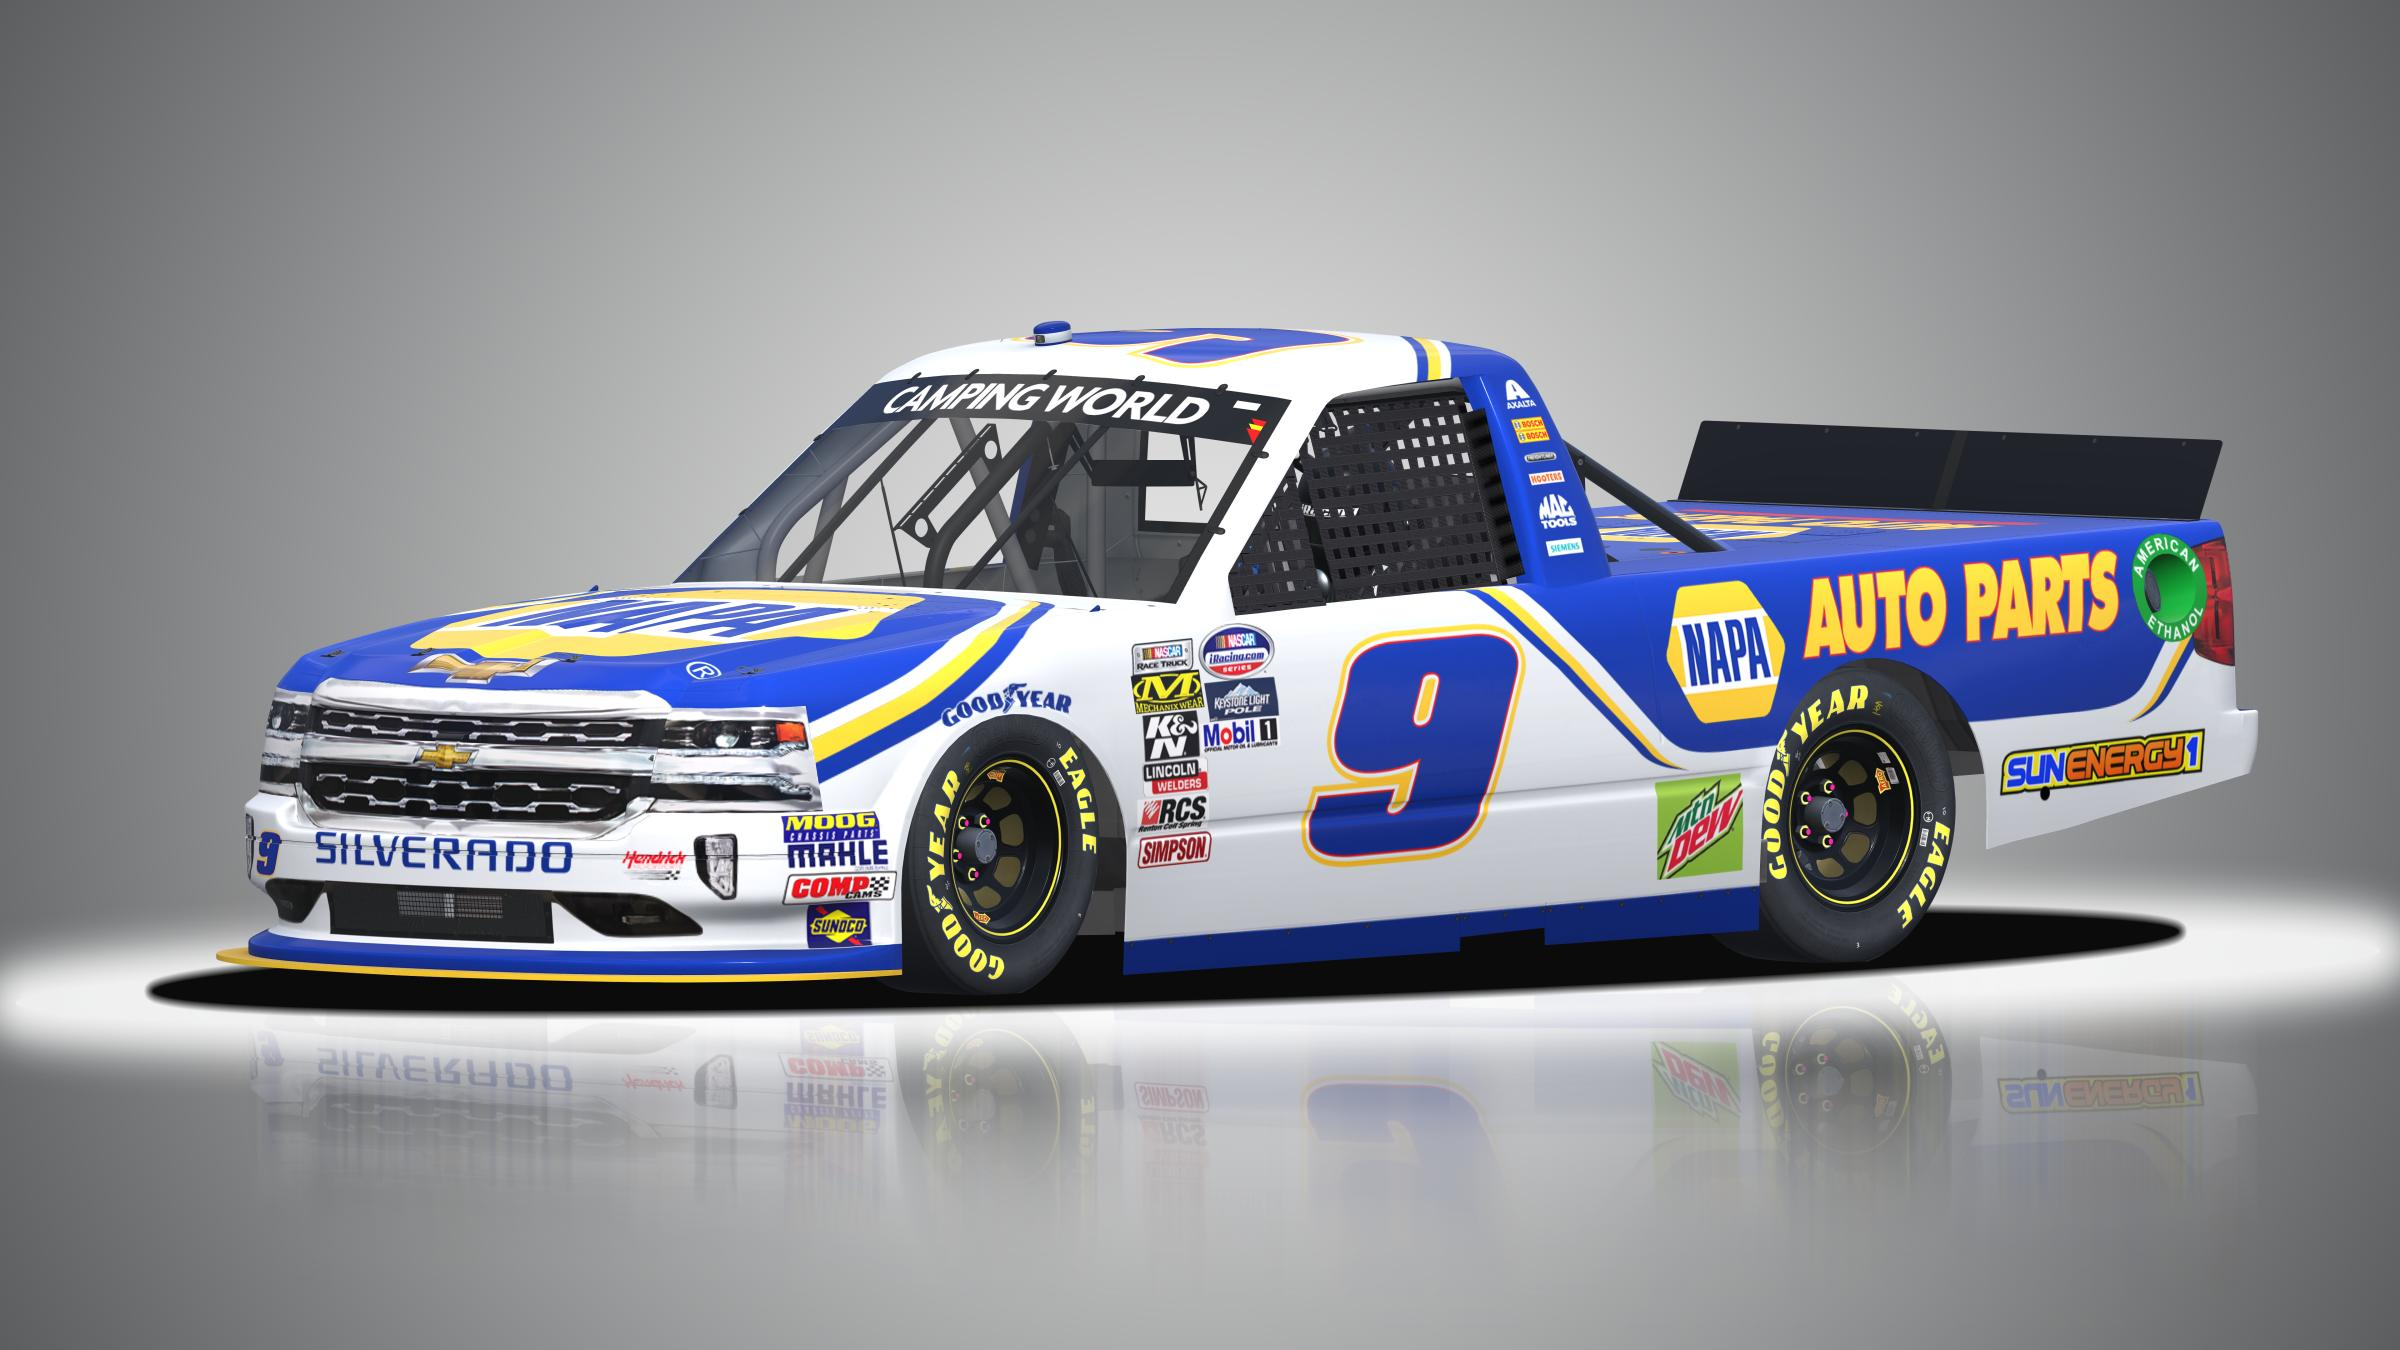 Preview of 2018 Napa Silverado  by Evan Sorensen